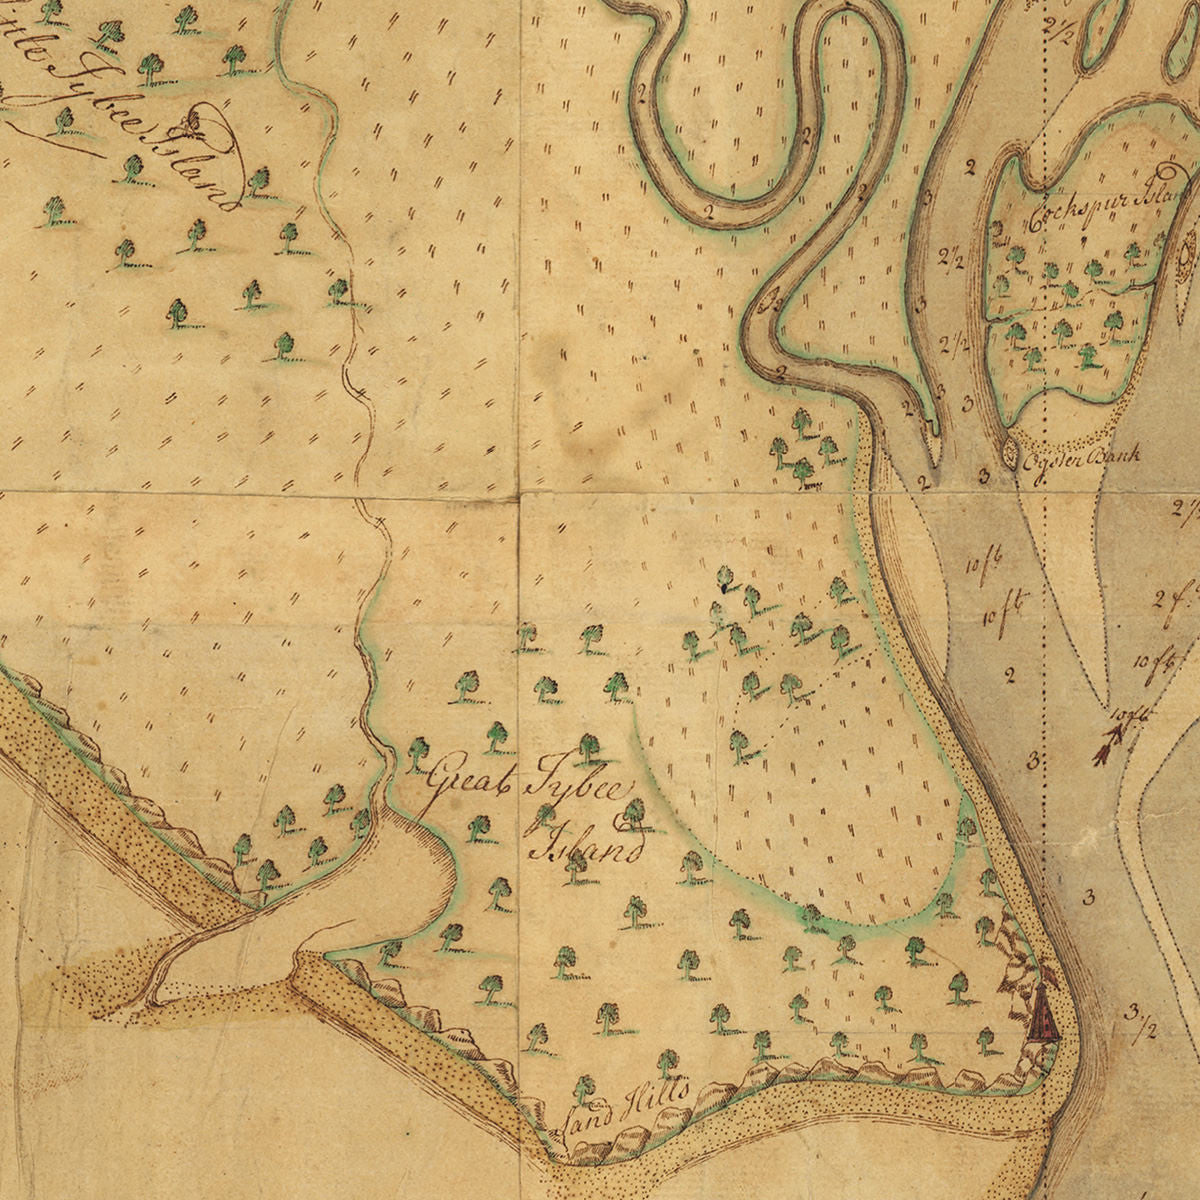 Savannah 1751 Savannah River Tybee Island Georgia Old Map